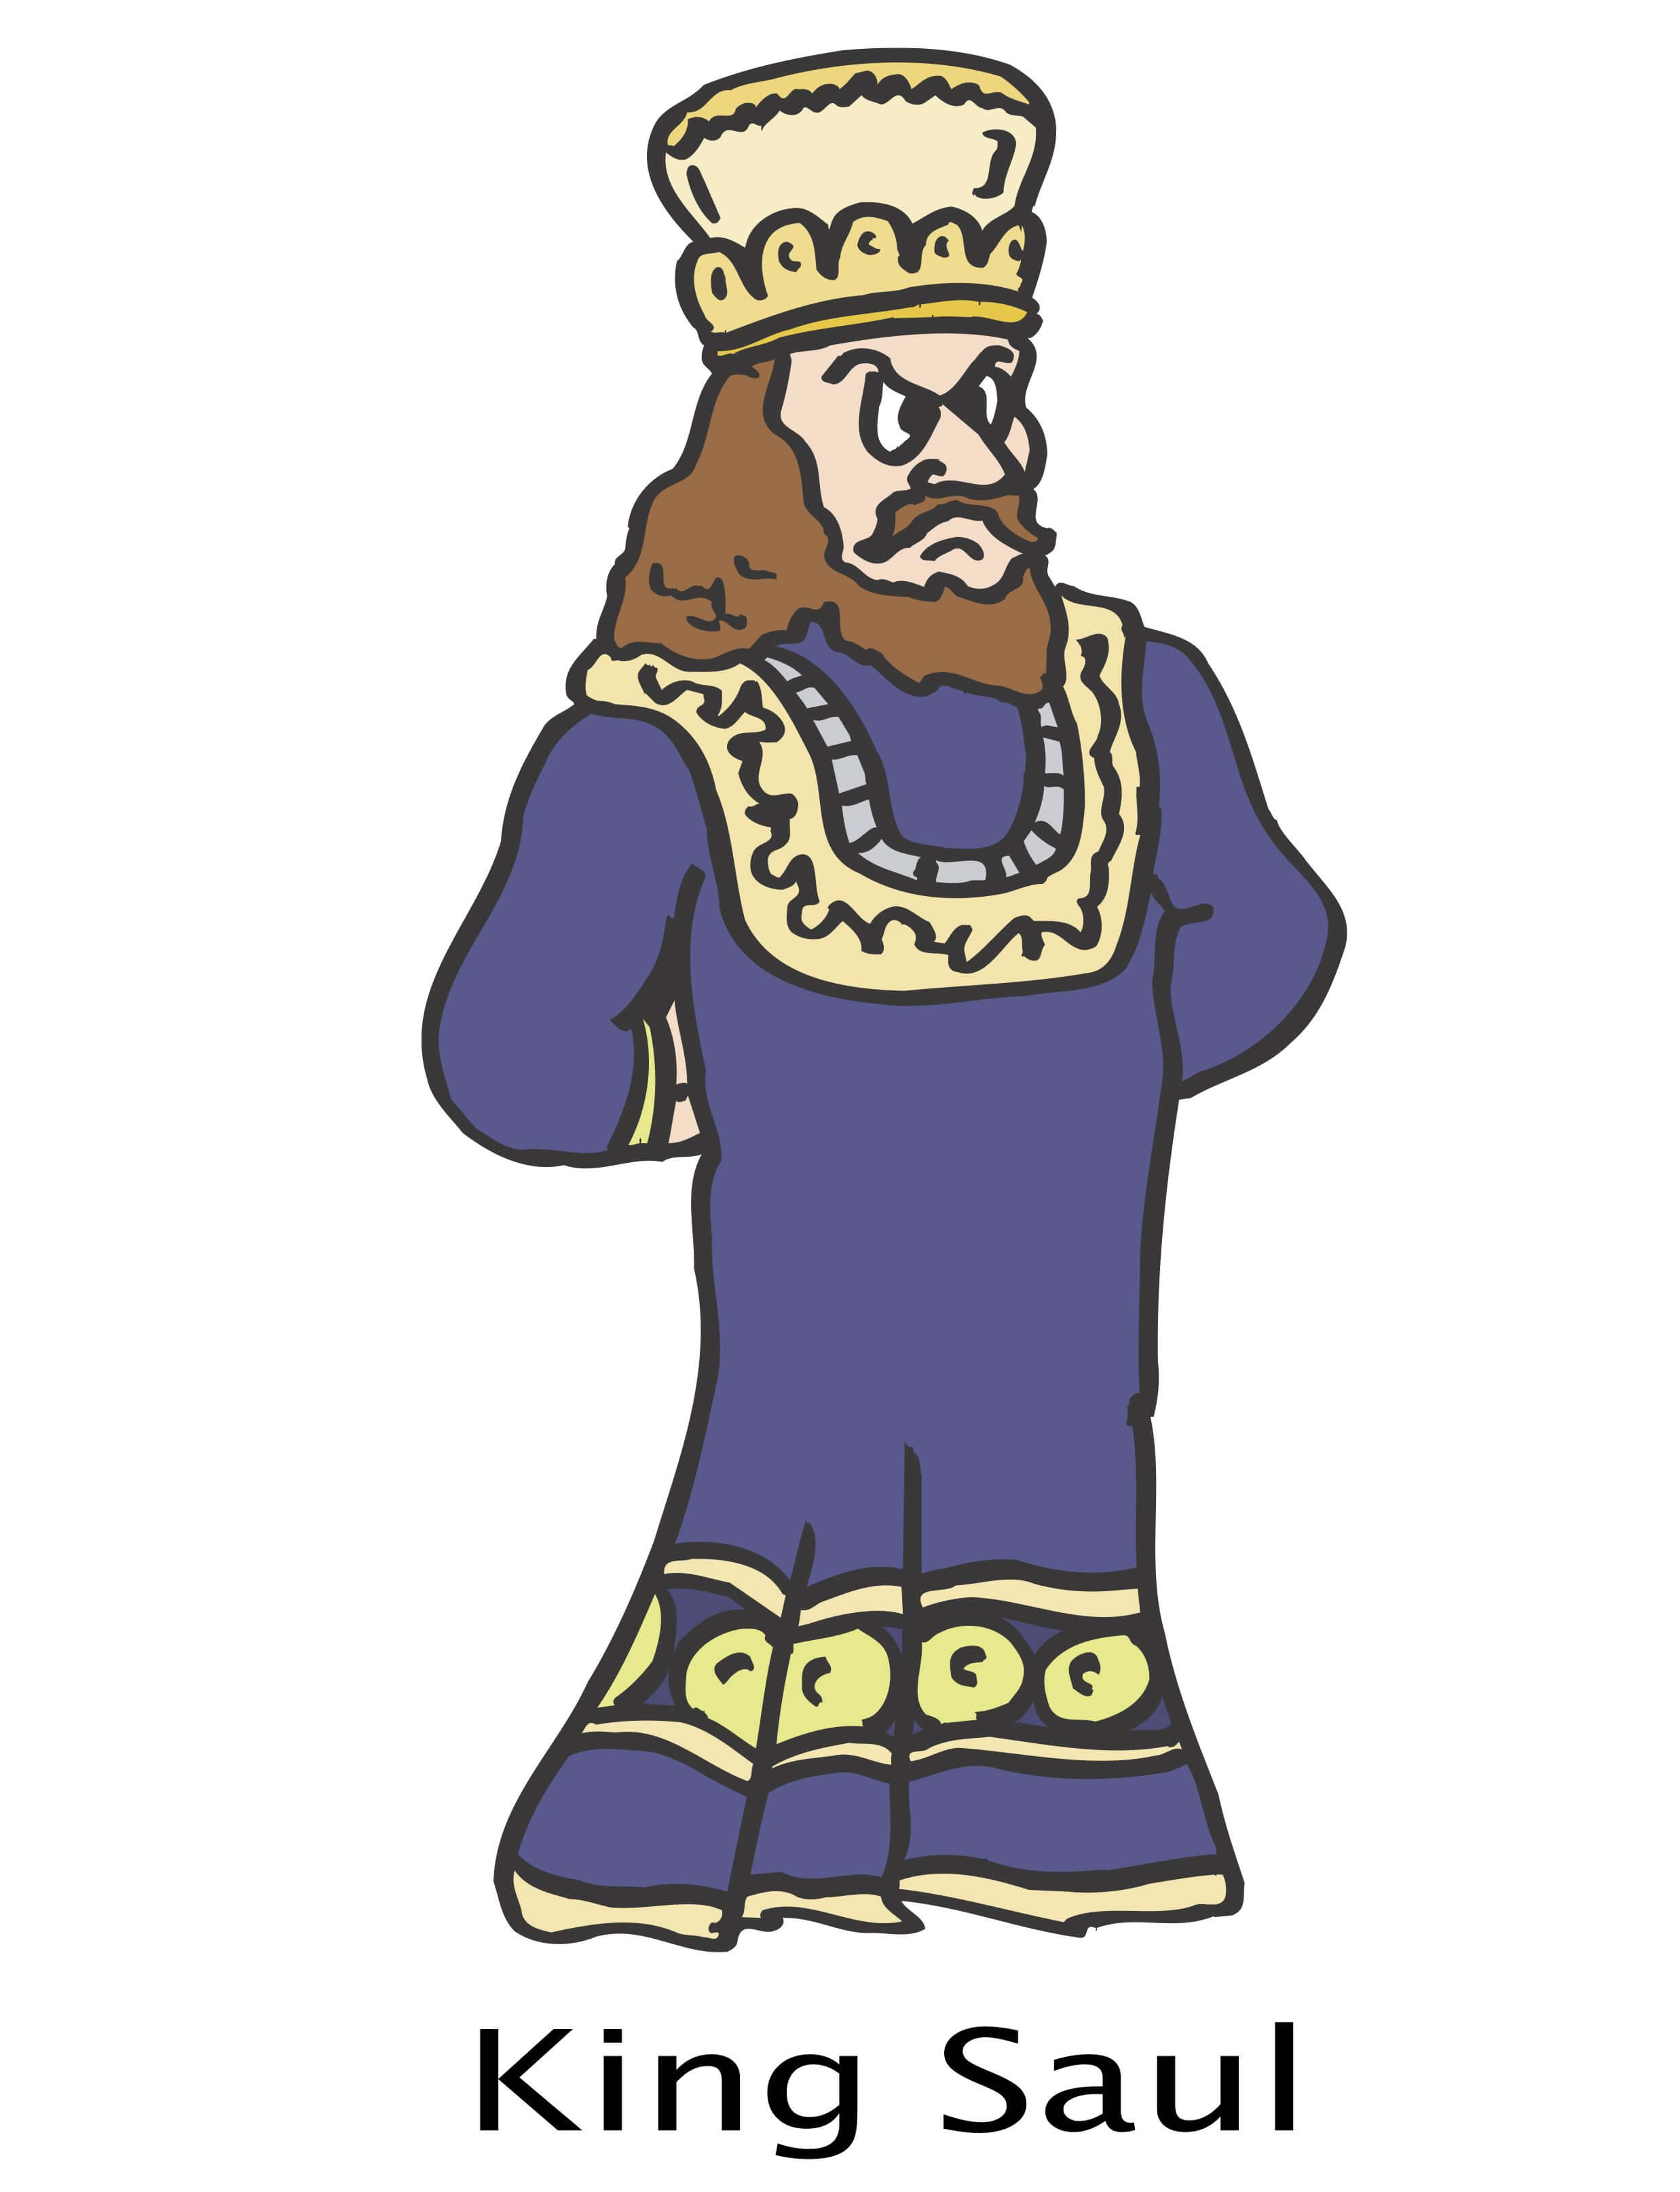 King Saul S Crown The Bible Story Of King Saul For